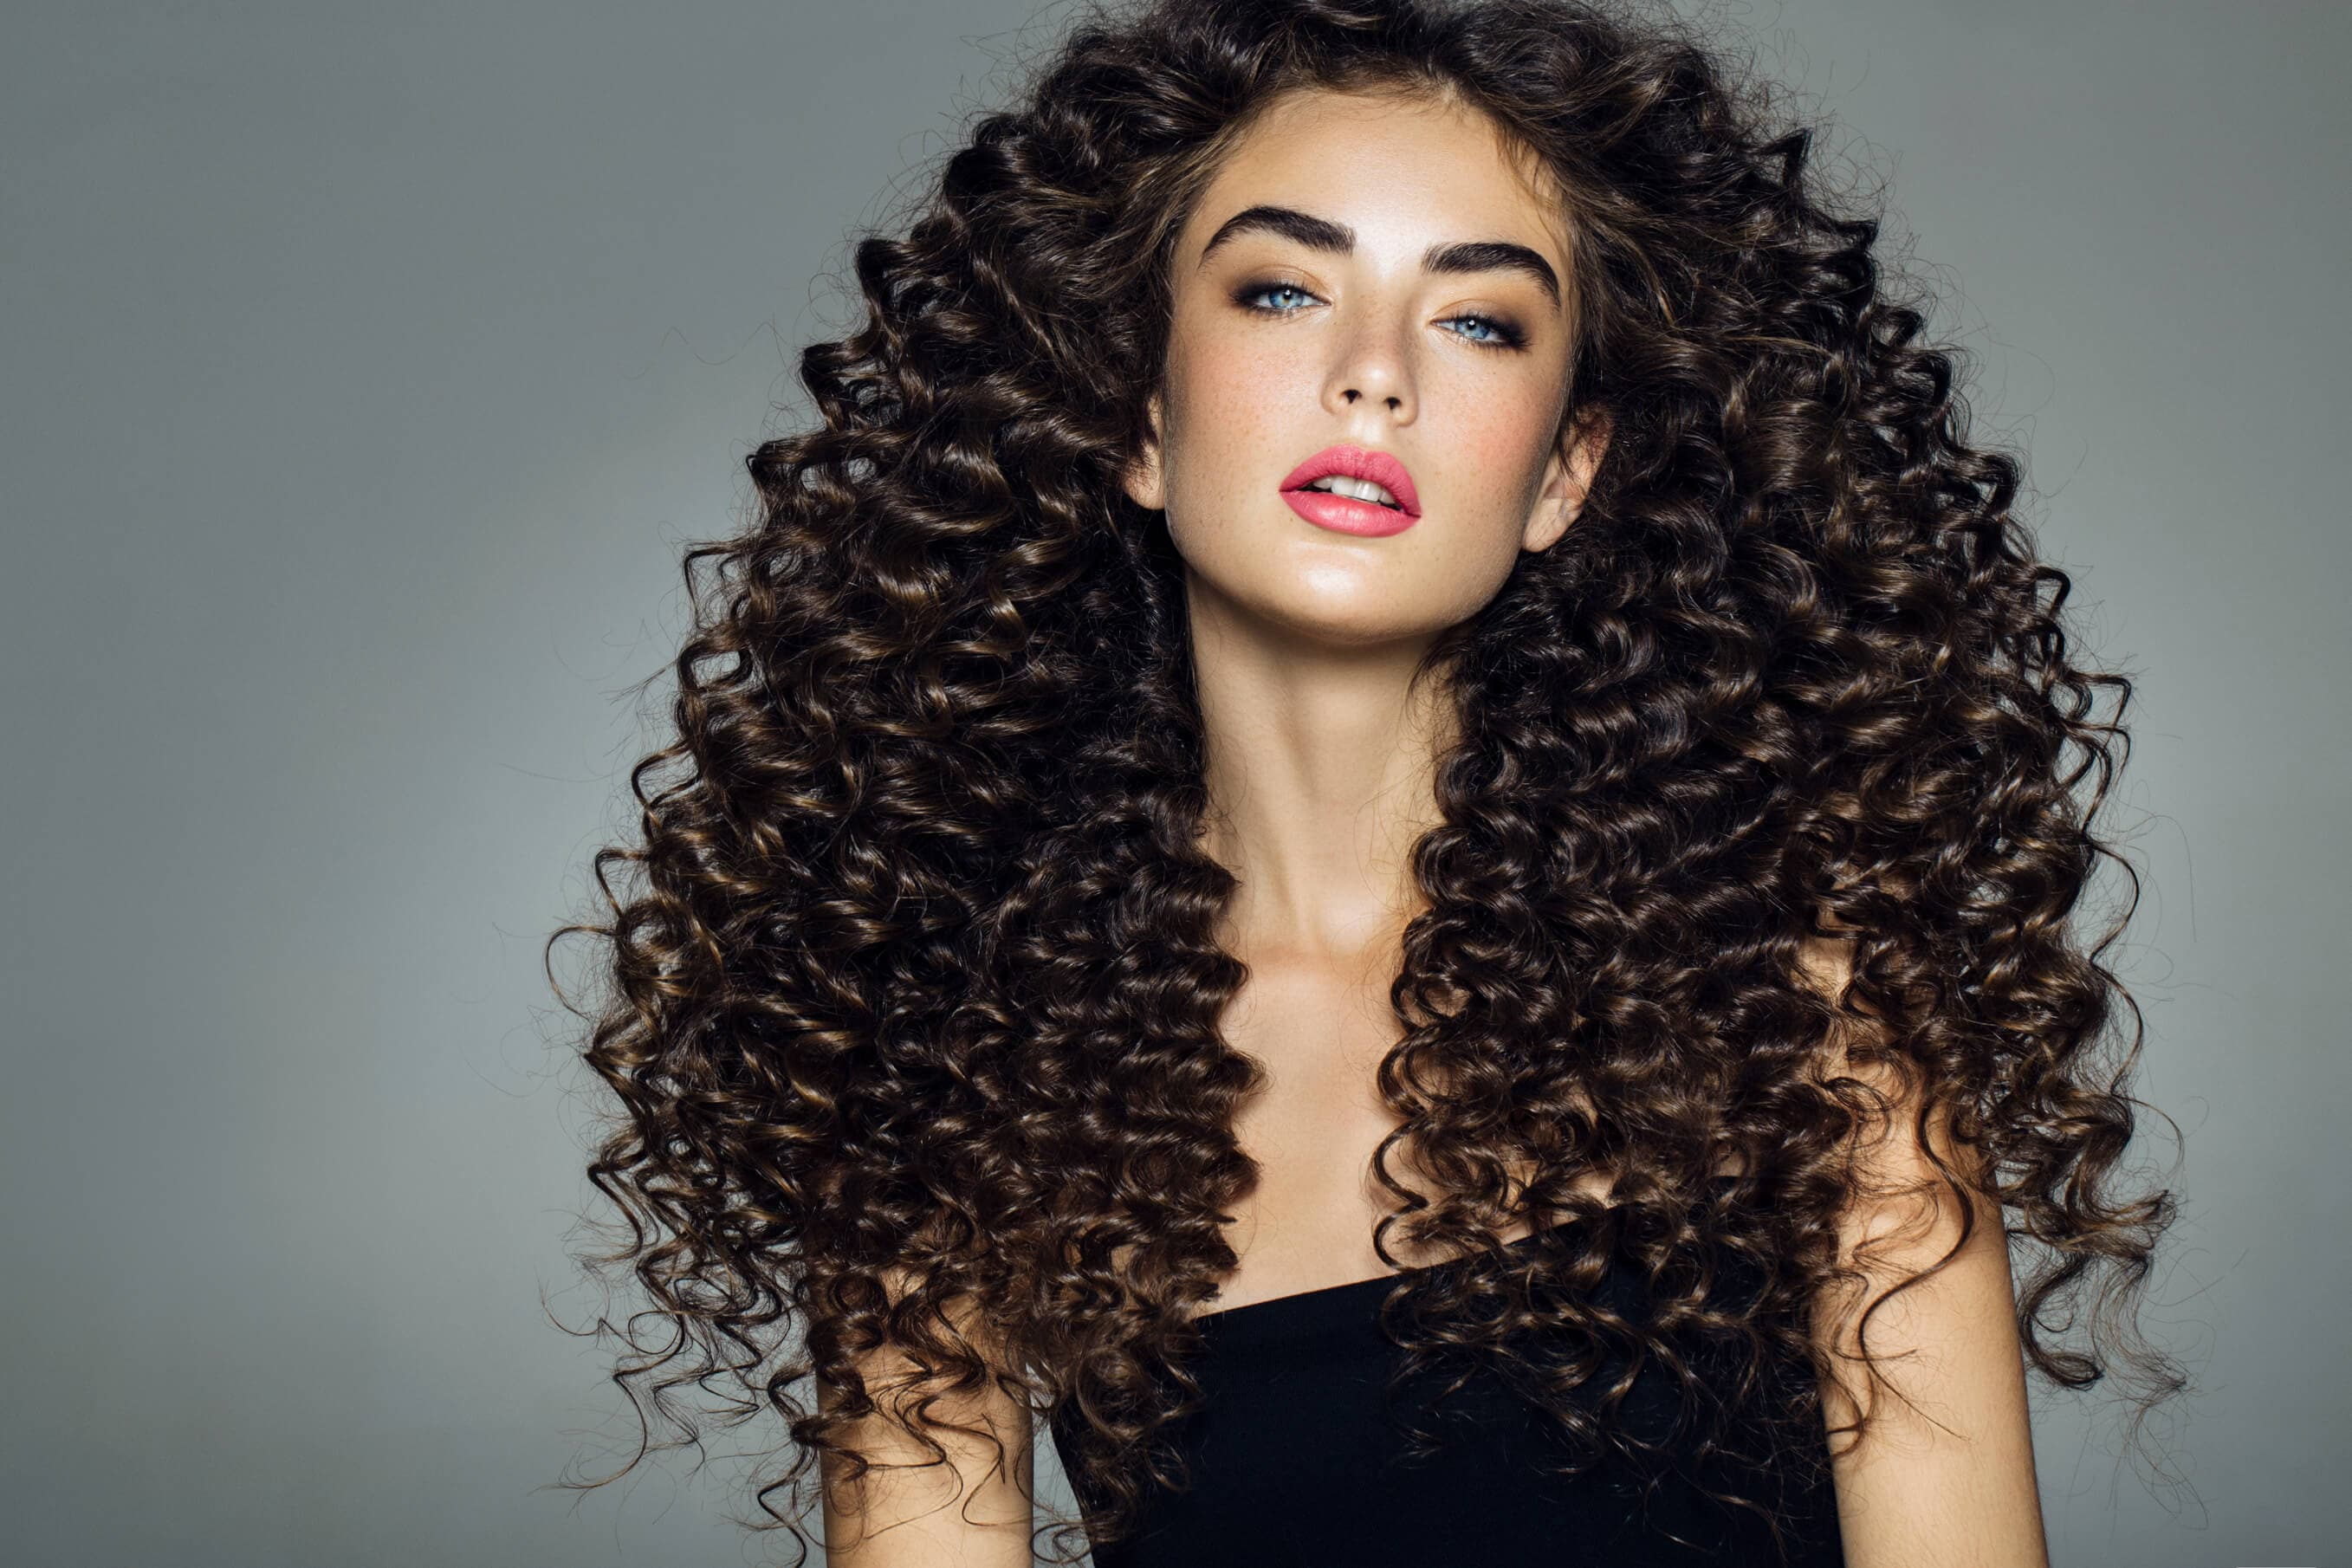 Wavy Hair Styling: Keratin Treatment For Curly Hair: The Best Option For You